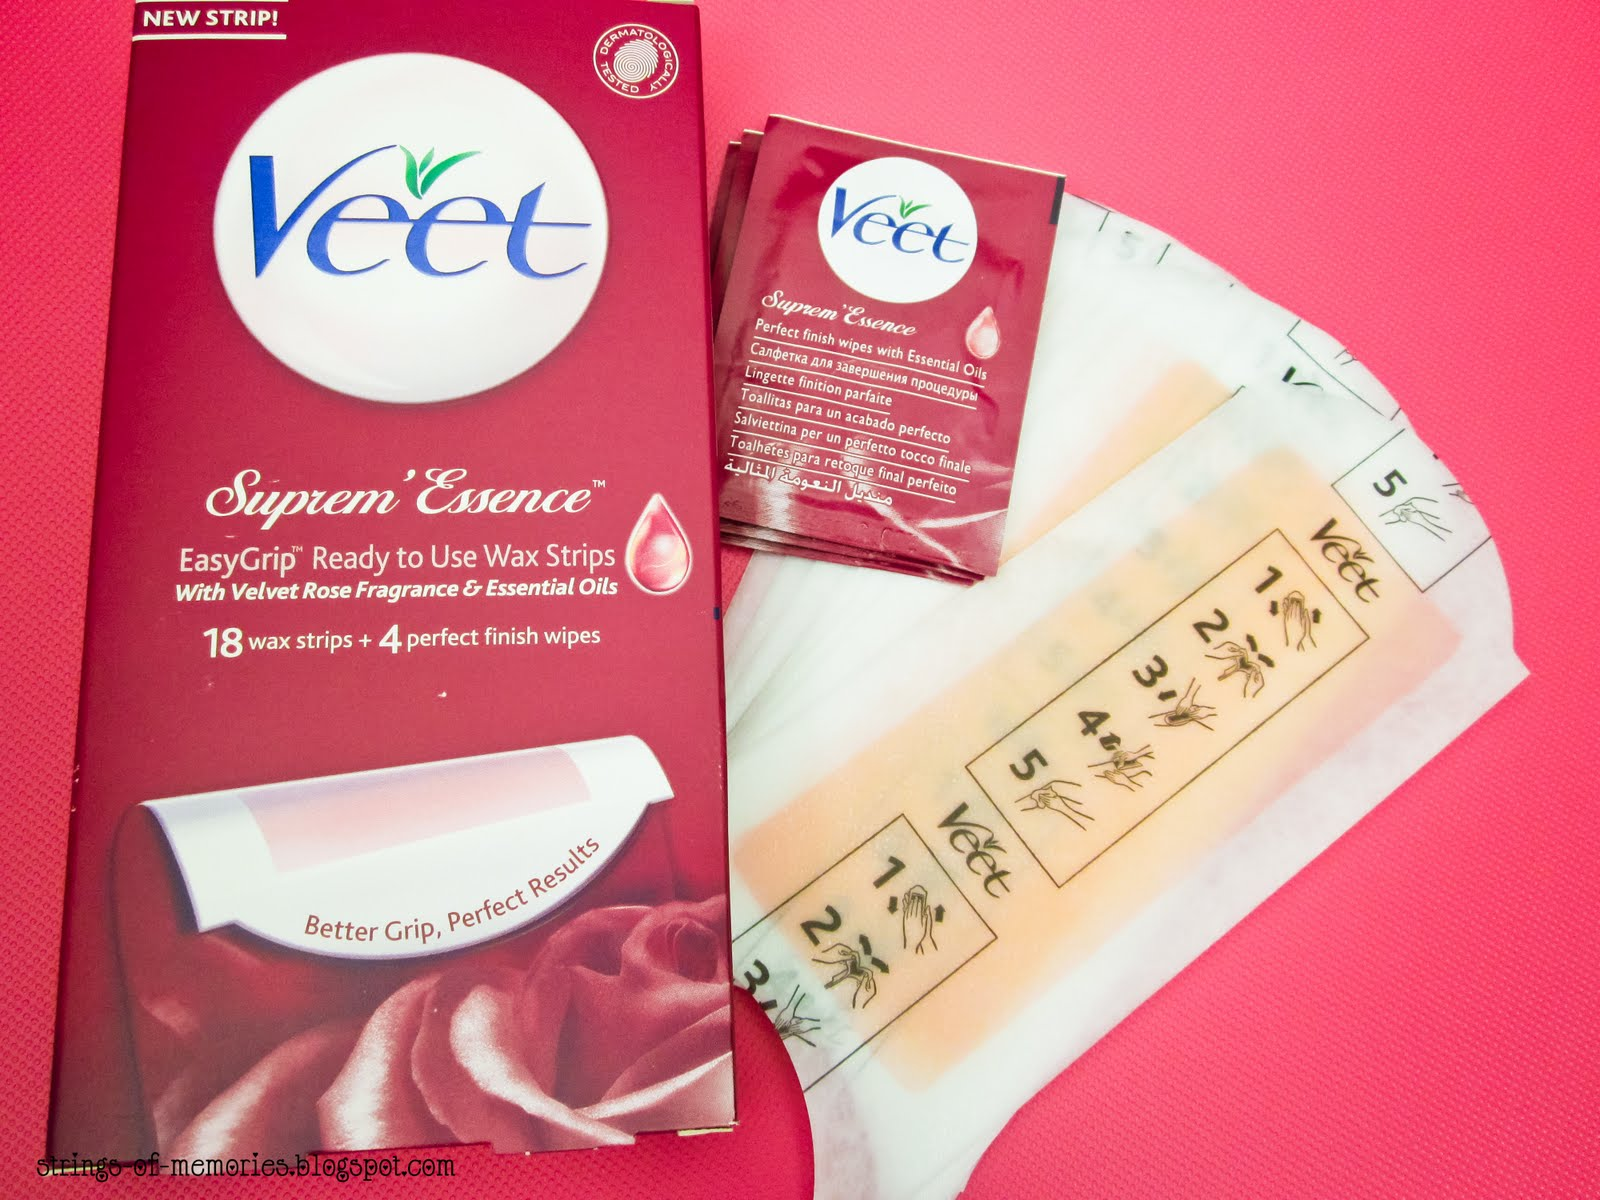 ... underarms and bikini line. Veet Suprem' Essence Wax Strips, RM27.90